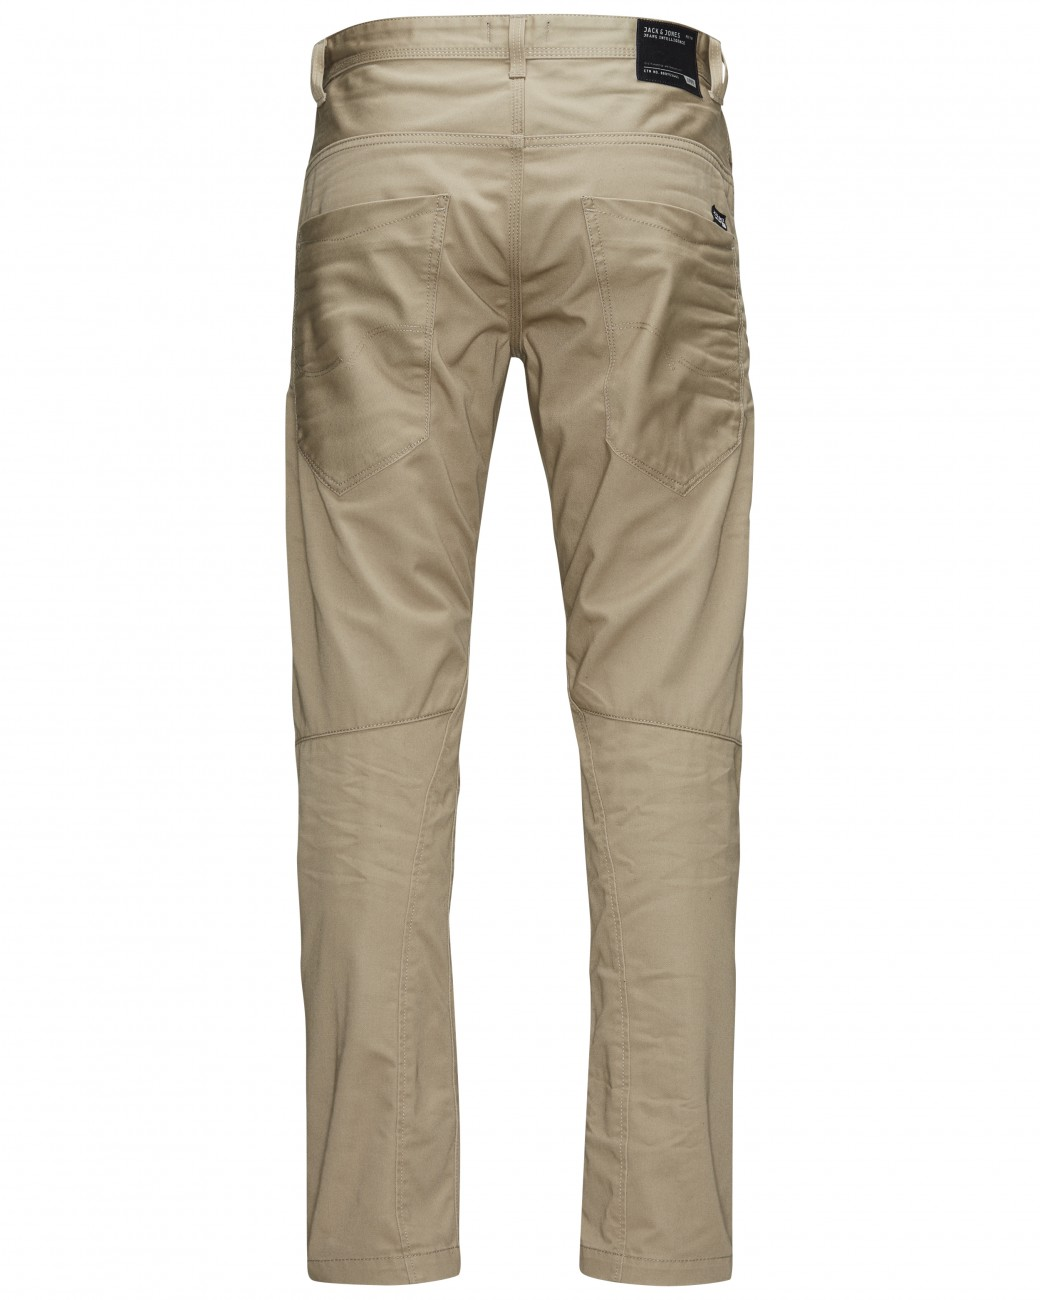 jack-jones-herren-hose-jjistan-jjisac-akm-249-anti-fit-beige-cornstalk